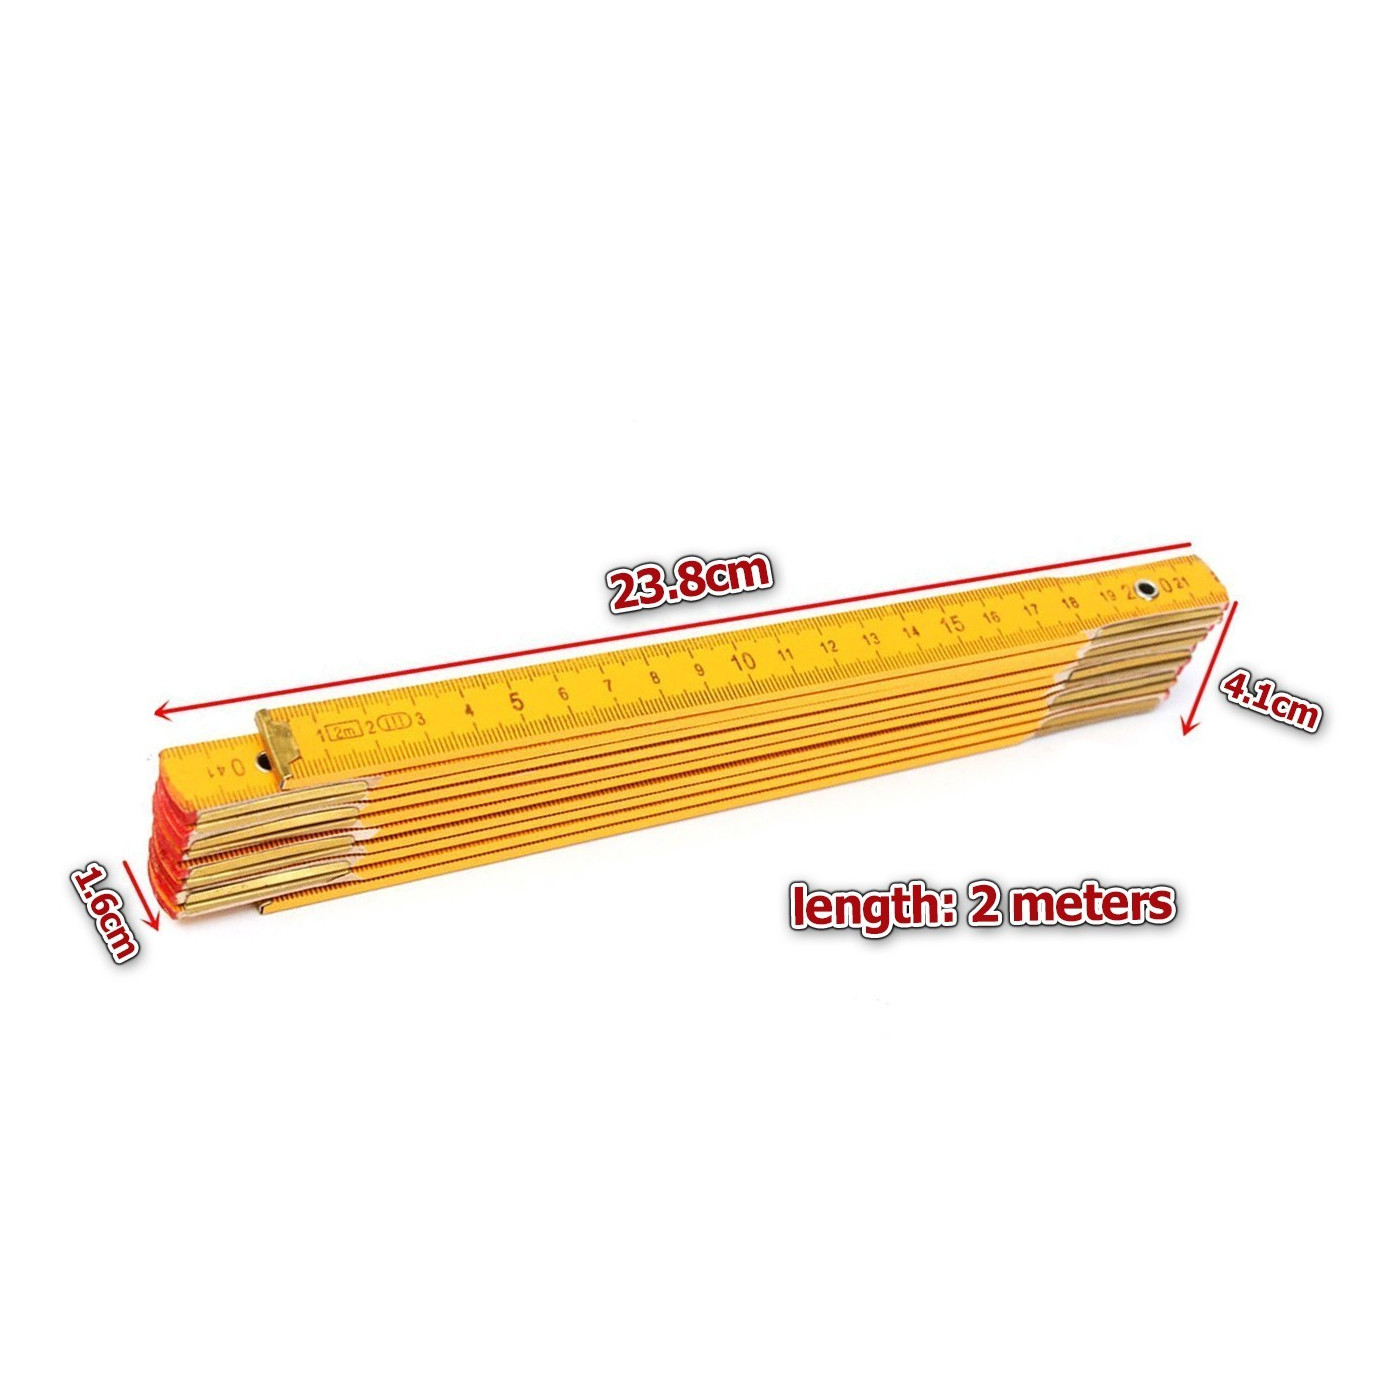 Foldable ruler from wood, 2 meters